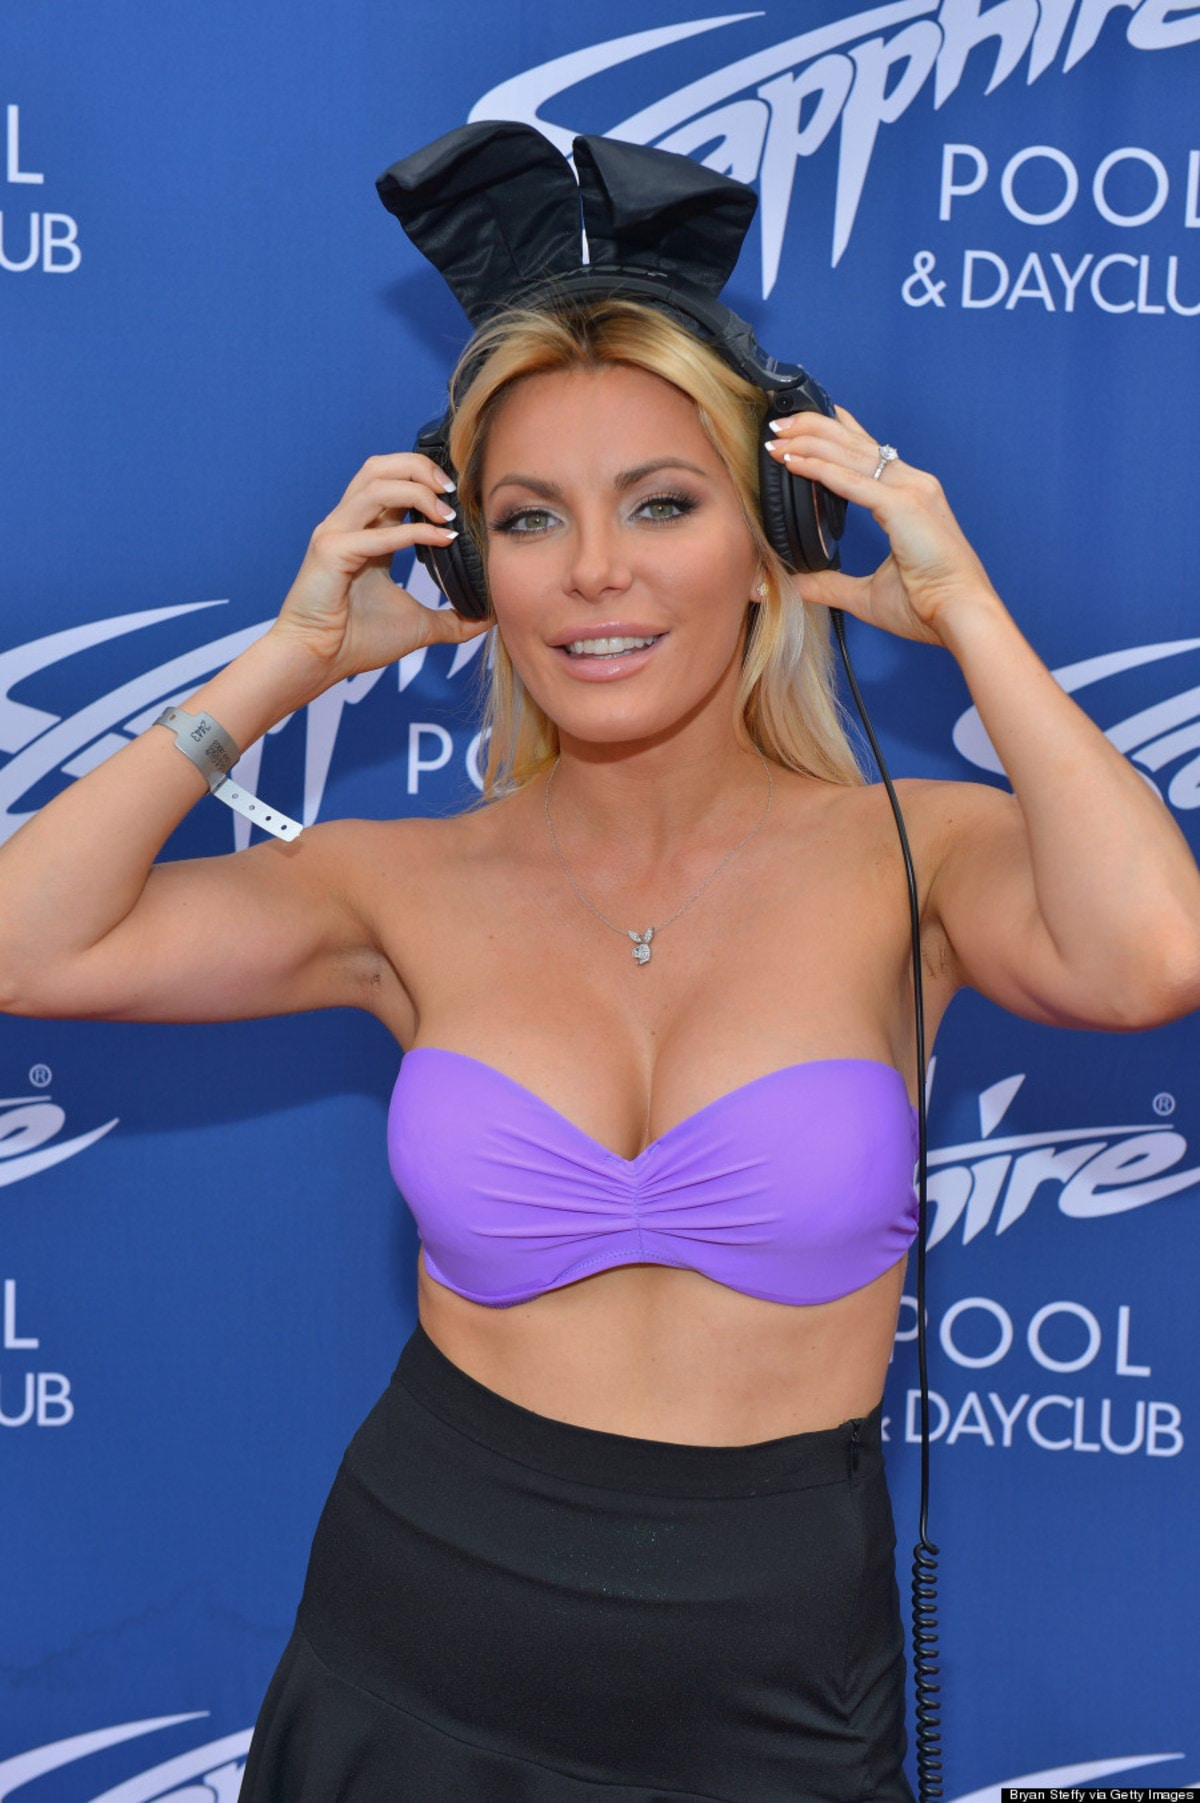 LAS VEGAS, NV - AUGUST 31: Television personality/model/DJ Crystal Hefner arrives at the Sapphire Pool & Dayclub to host Labor Day weekend on August 31, 2013 in Las Vegas, Nevada. (Photo by Bryan Steffy/Getty Images)